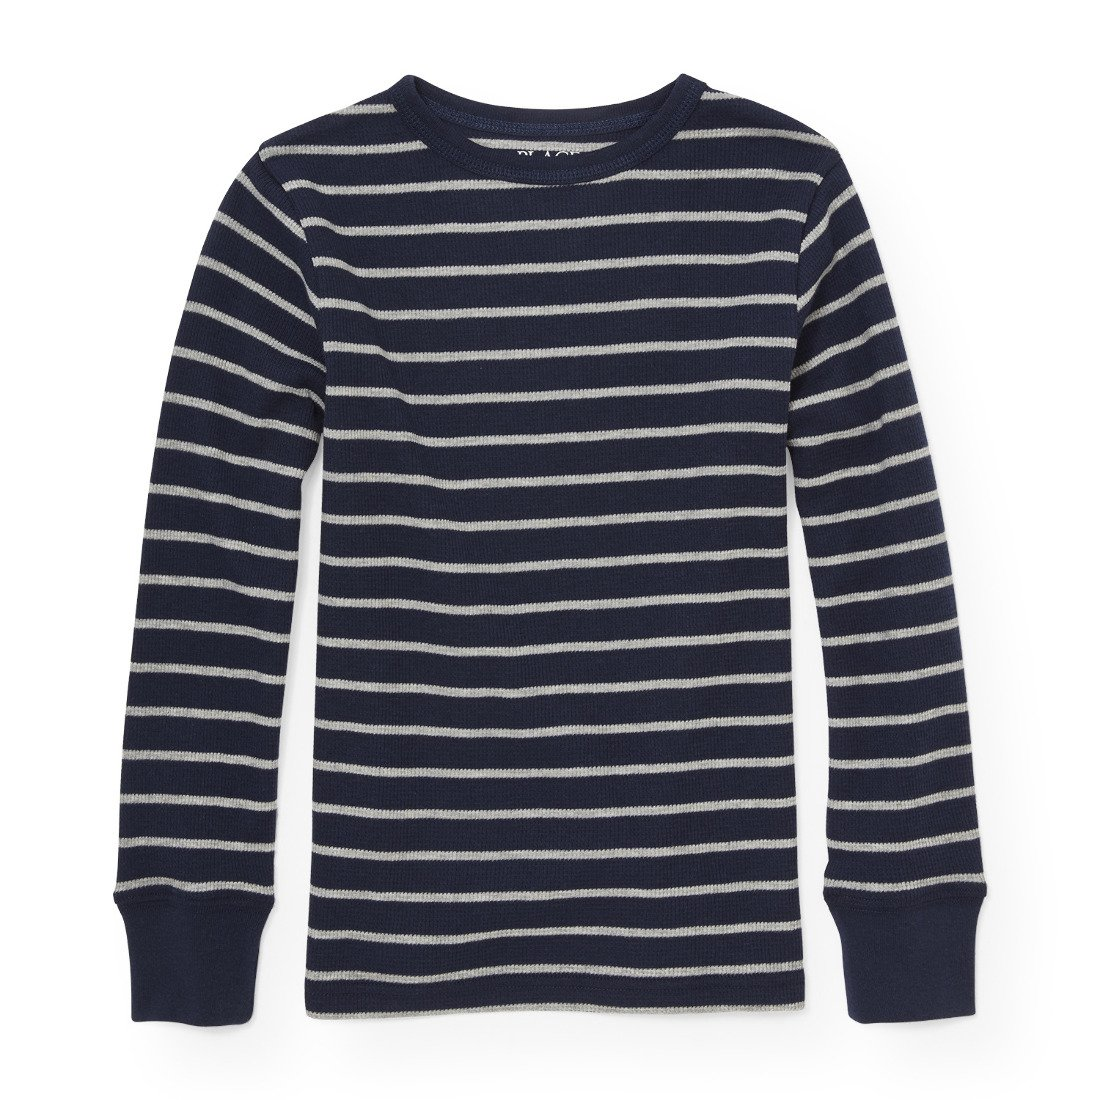 The Childrens Place Big Boys Stripe Thermal Tee